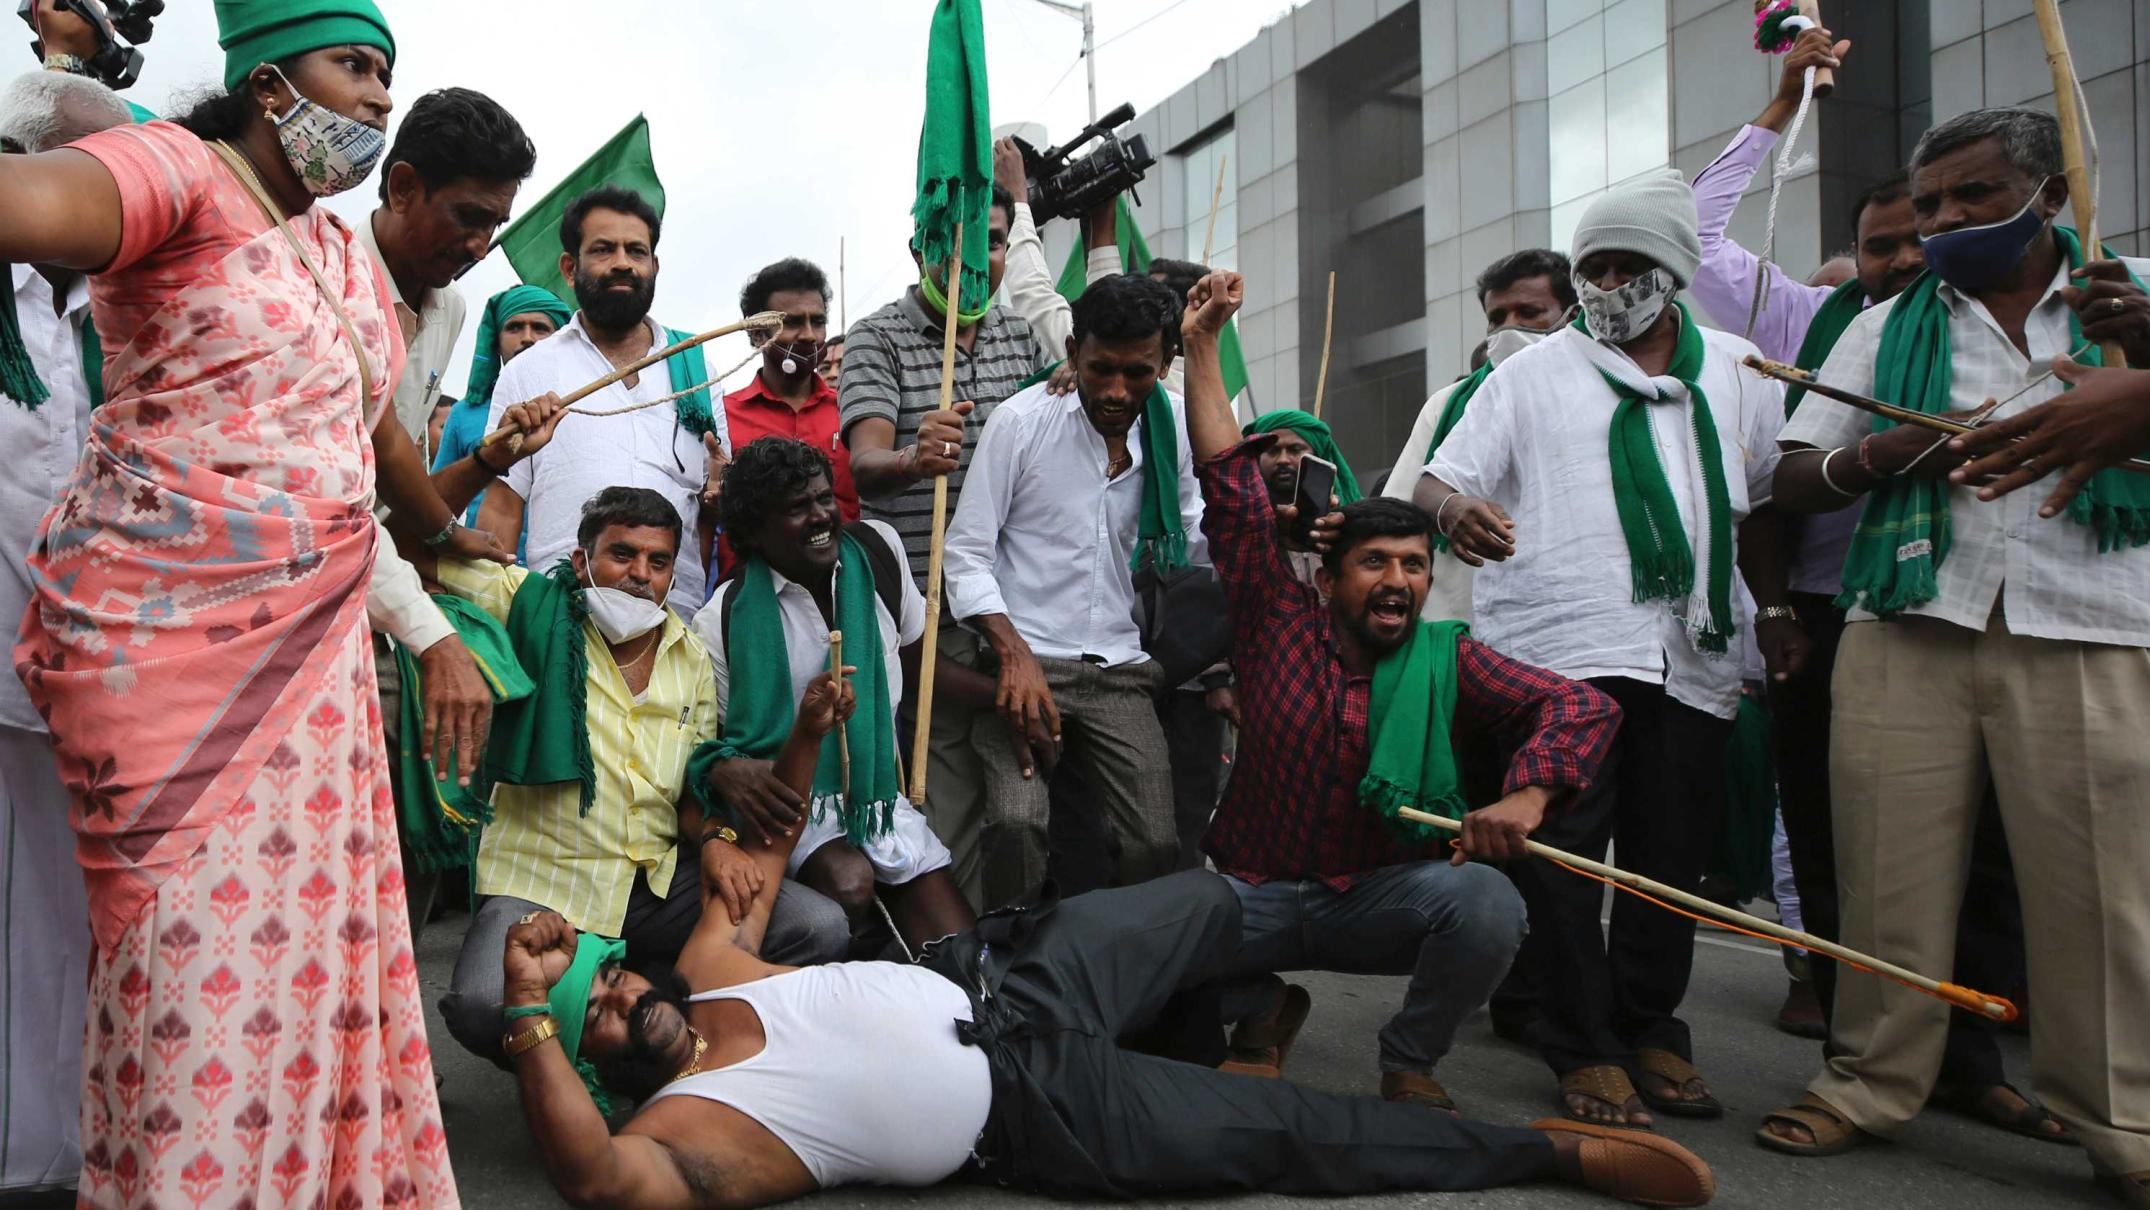 indian-farmers-fight-reform-laws,-but-changes-could-boost-trade-with-australia